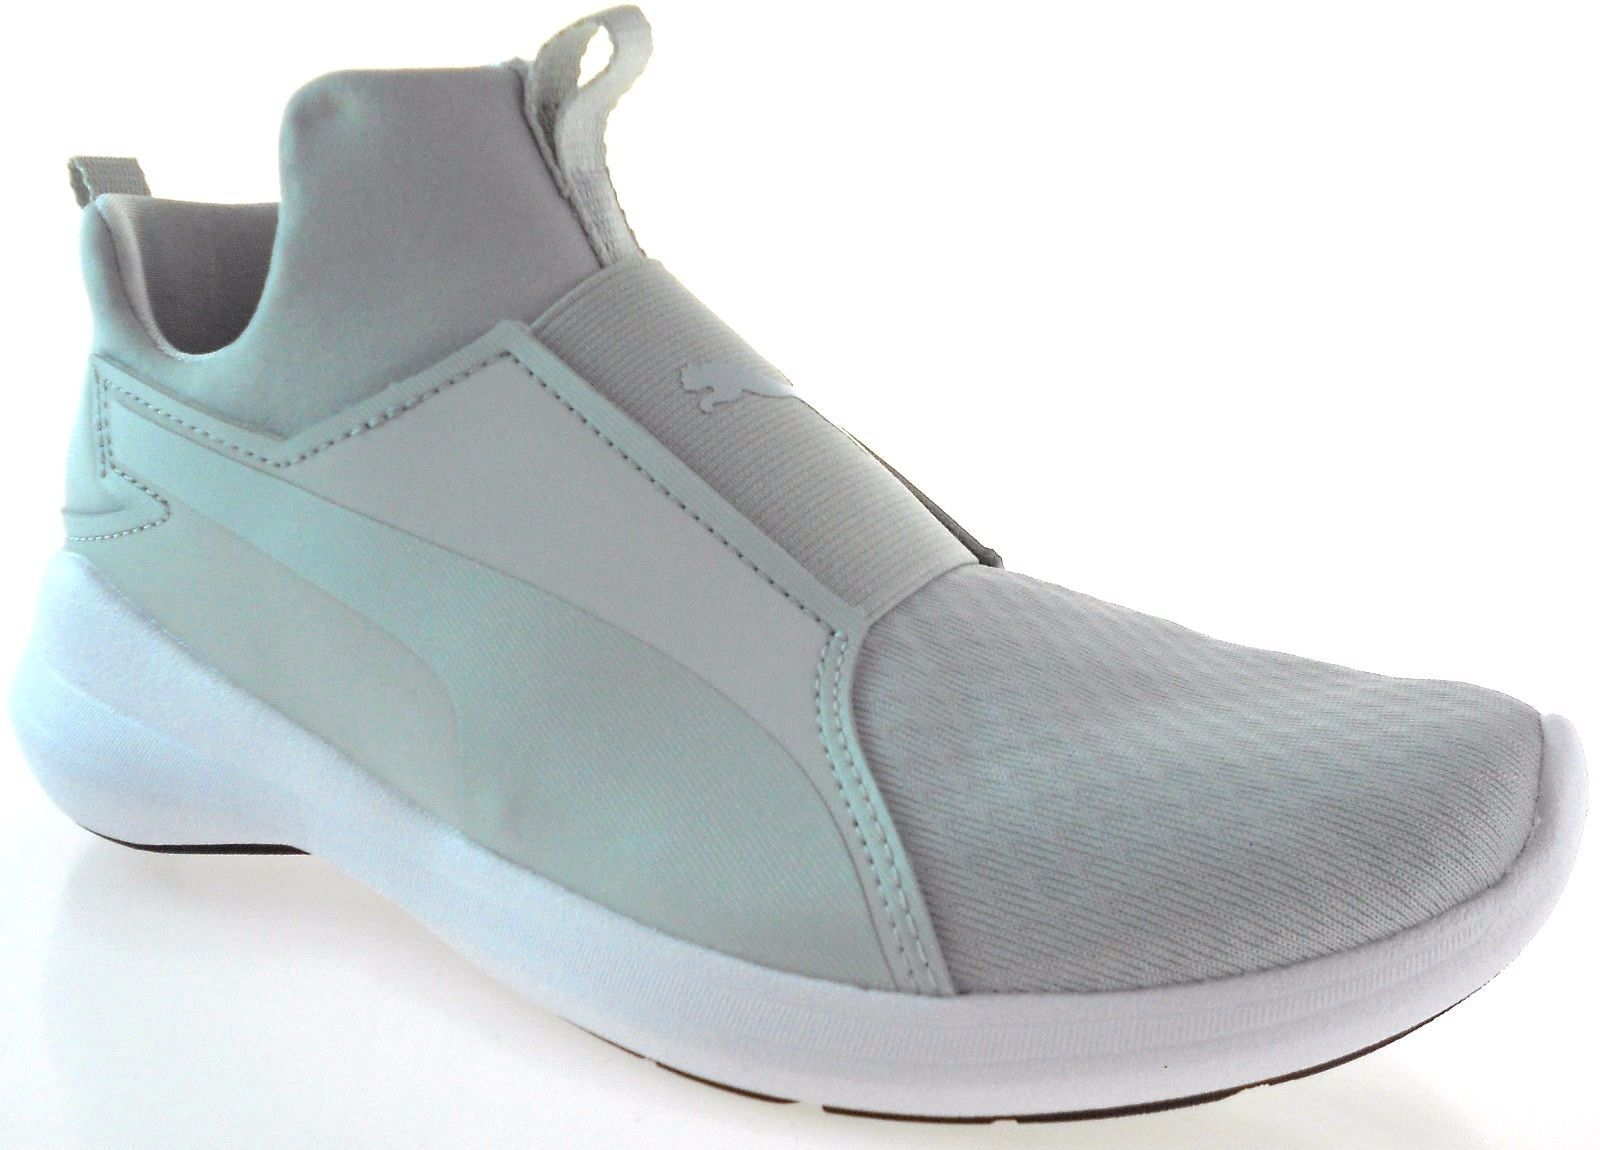 best sneakers 32a5e 4b9ad S l1600. S l1600. Previous. PUMA REBEL MID WOMEN S GRAY VIOLET WHITE SHOES